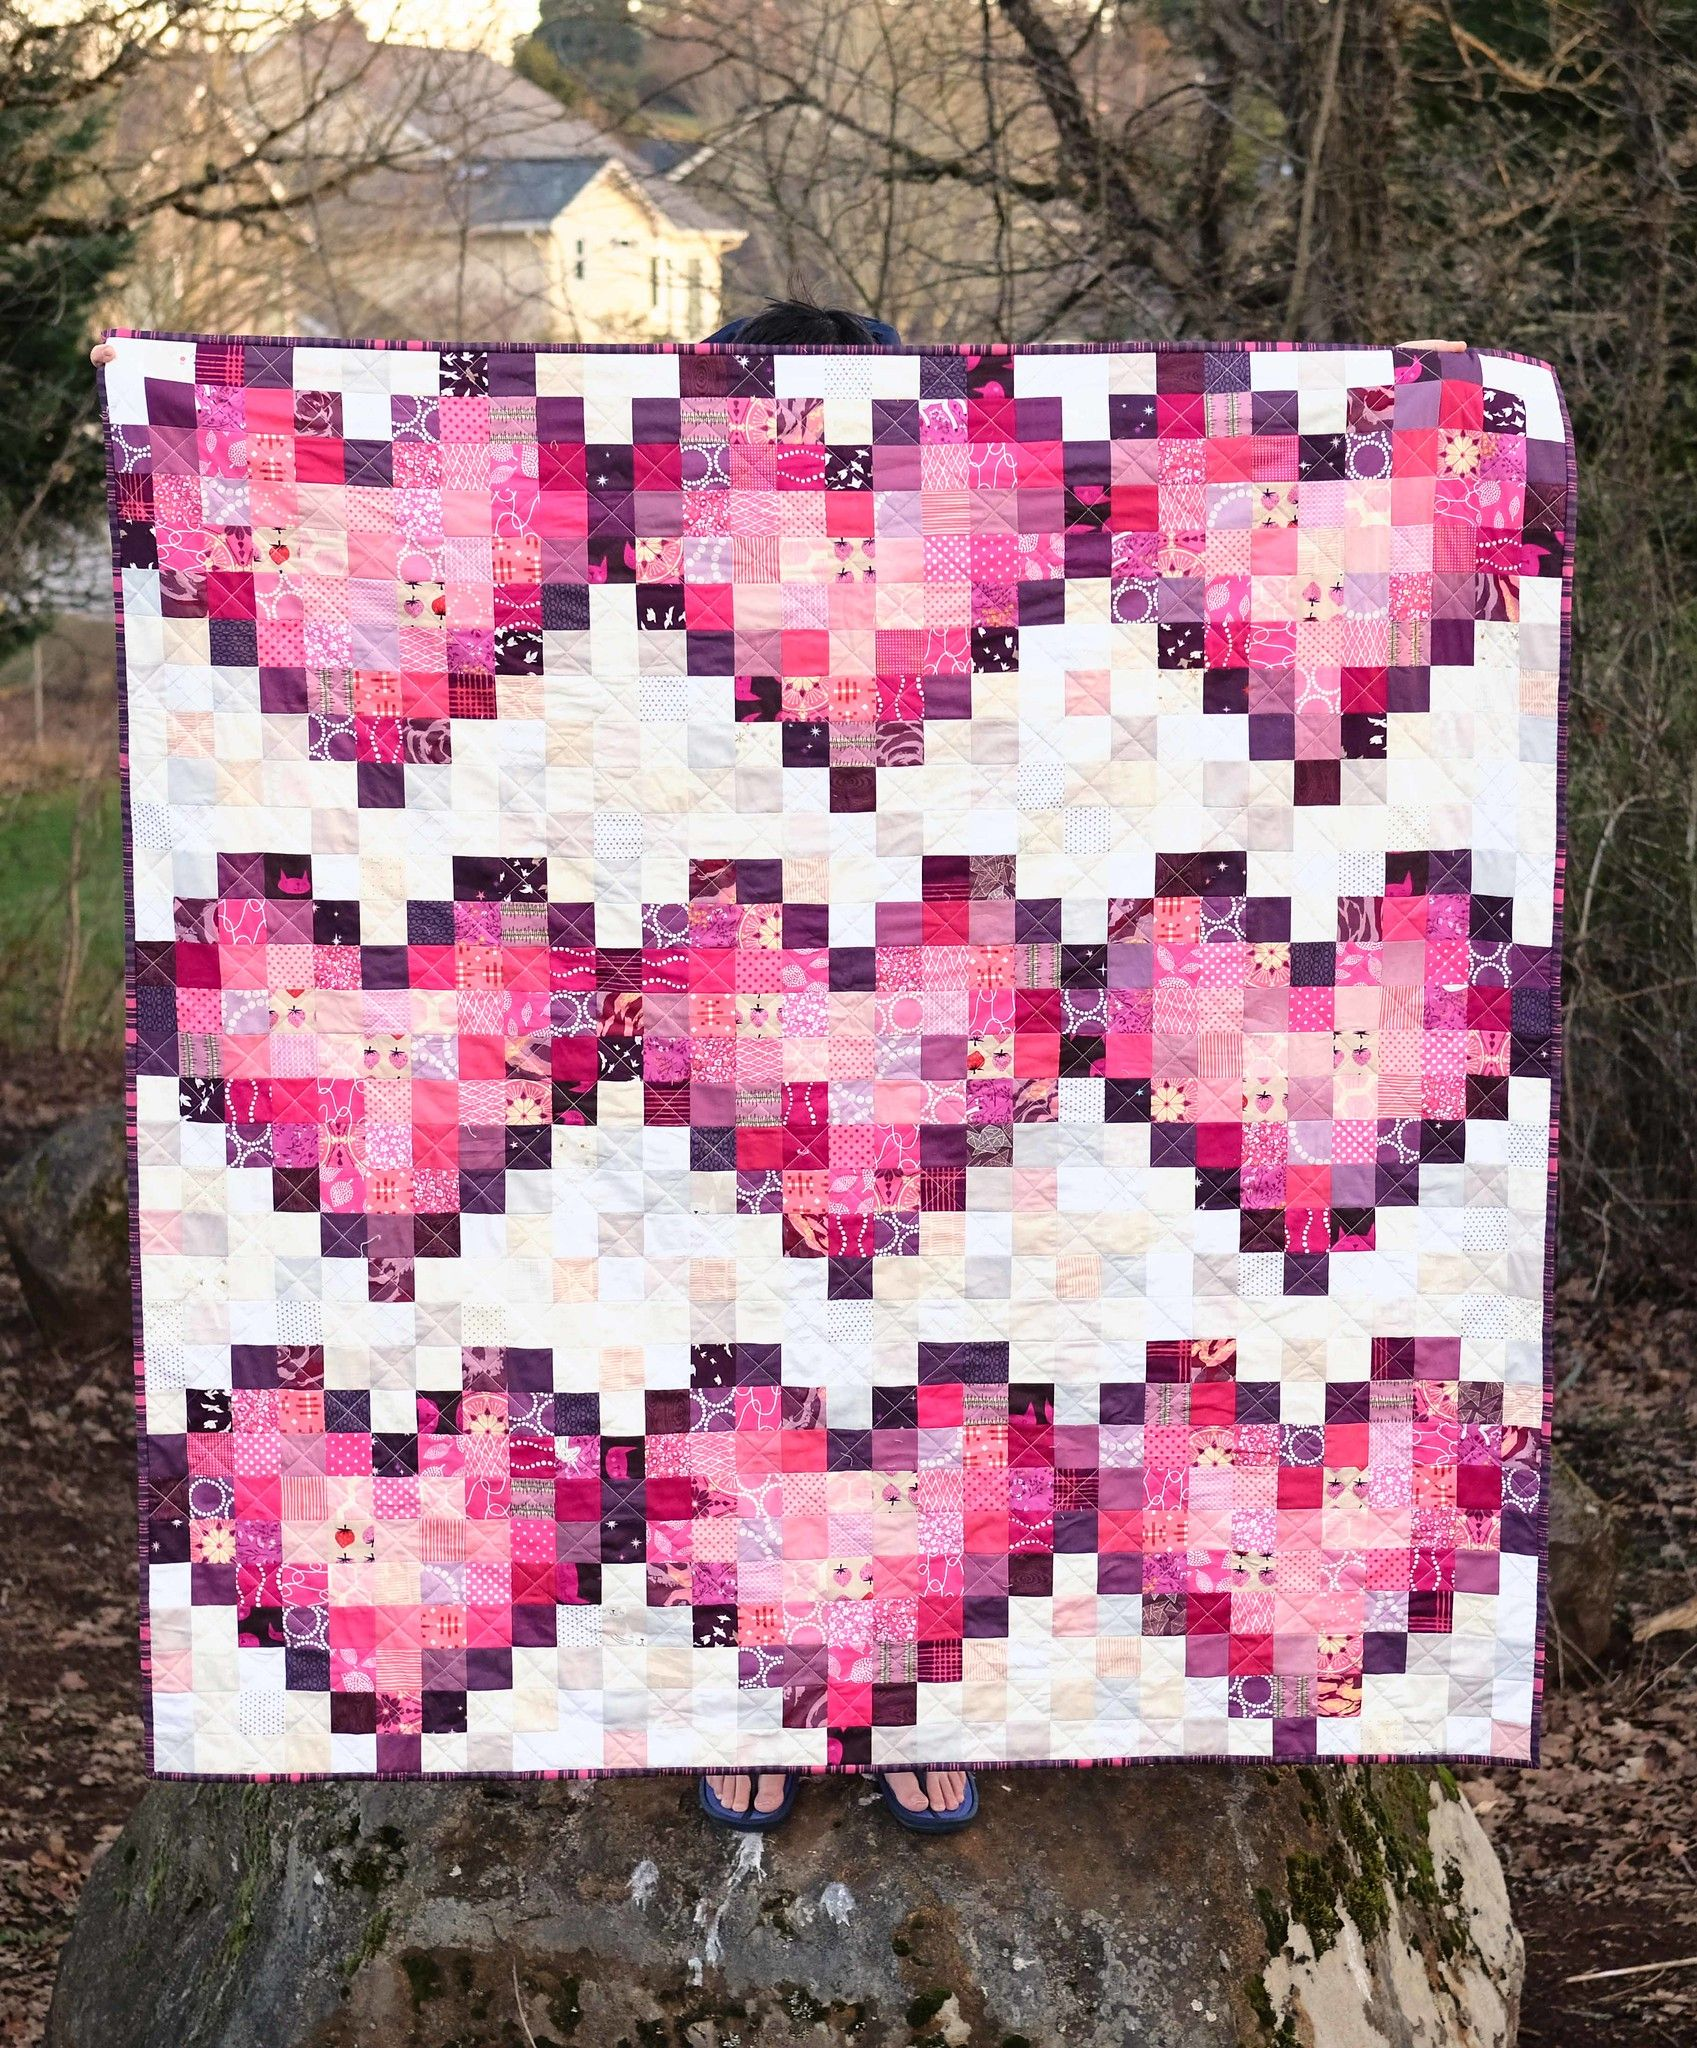 Pixel Love Scrap Quilt is part of Scrap quilts, Pixel quilting, Cowboy quilt, Quilts, Heart quilt, Quilt blocks - I talked a little in my last post about my scrap goals for the year one scrap quilt each month until my scrap bin is (more or less) bare  In February, I started this quilt with ambitions to finish before Valentine's Day and I finally finished the sewing down the binding last week  Scrap quilt number one took a long time, but it's done! I did have to cut a little bit from my stash because I have almost no purple scraps, but all of the neutrals and almost all of the pinks came right from the good old scrap bin  There is a tutorial available for this quilt and I followed the tutorial except I left the borders off of my quilt; I only had one good backing option in my stash and I wouldn't have had quite enough if I had added the borders  For the quilting, I did a simple crosshatch  When the squares on the quilt are this small, I usually just eyeball where the lines should be and don't bother marking them  They end up a little wibbly wobbly, but nothing too noticeable  The binding is an Anna Maria Horner voile  I think this is the first time I have done a voile binding and it was a dream to work with  The backing fabric is from Denyse Schmidt's Flea Market Fancy reprint  Even though I didn't finish the quilt in time for Valentine's Day, it is ready to go for next year! Do you want to join along in making some scrap quilts this year  I am working on a post with ideas for different scrap projects and hopefully that will be ready later this week  Pattern Pixel Love Tutorial Fabrics Various scraps from my overflowing scrap bin Backing Pink Seeds from Flea Market Fancy by Denyse Schmidt Binding Innocent Crush voile by Anna Maria Horner Batting Simply Natural Happy Cloud Batting